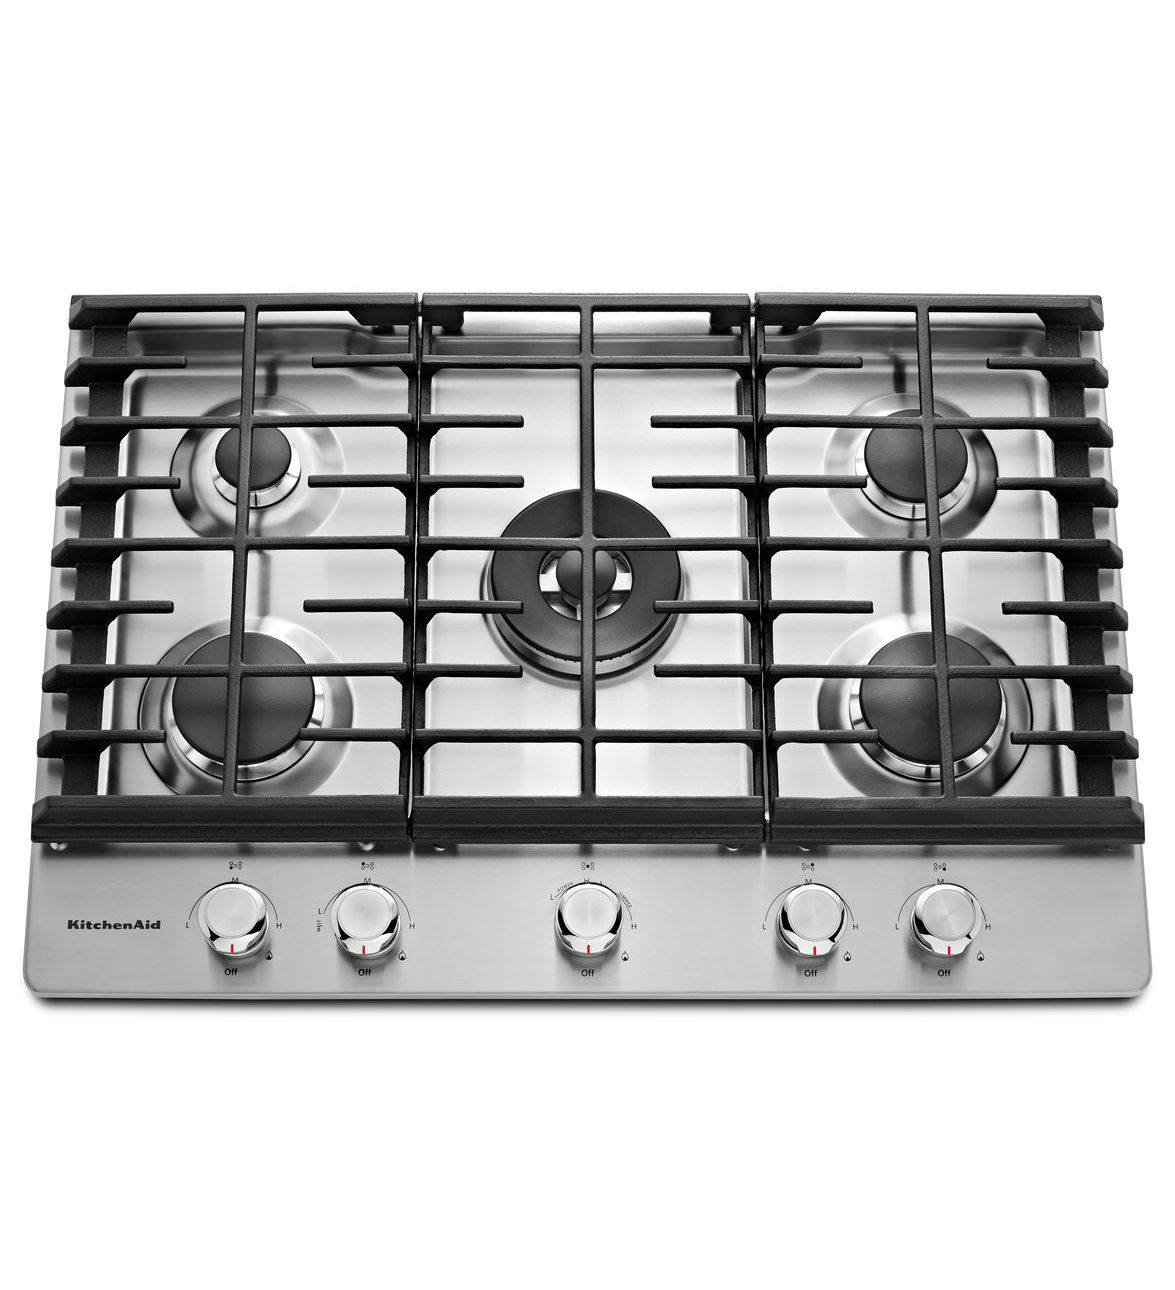 KitchenAid® 30'' 5-Burner Gas Cooktop